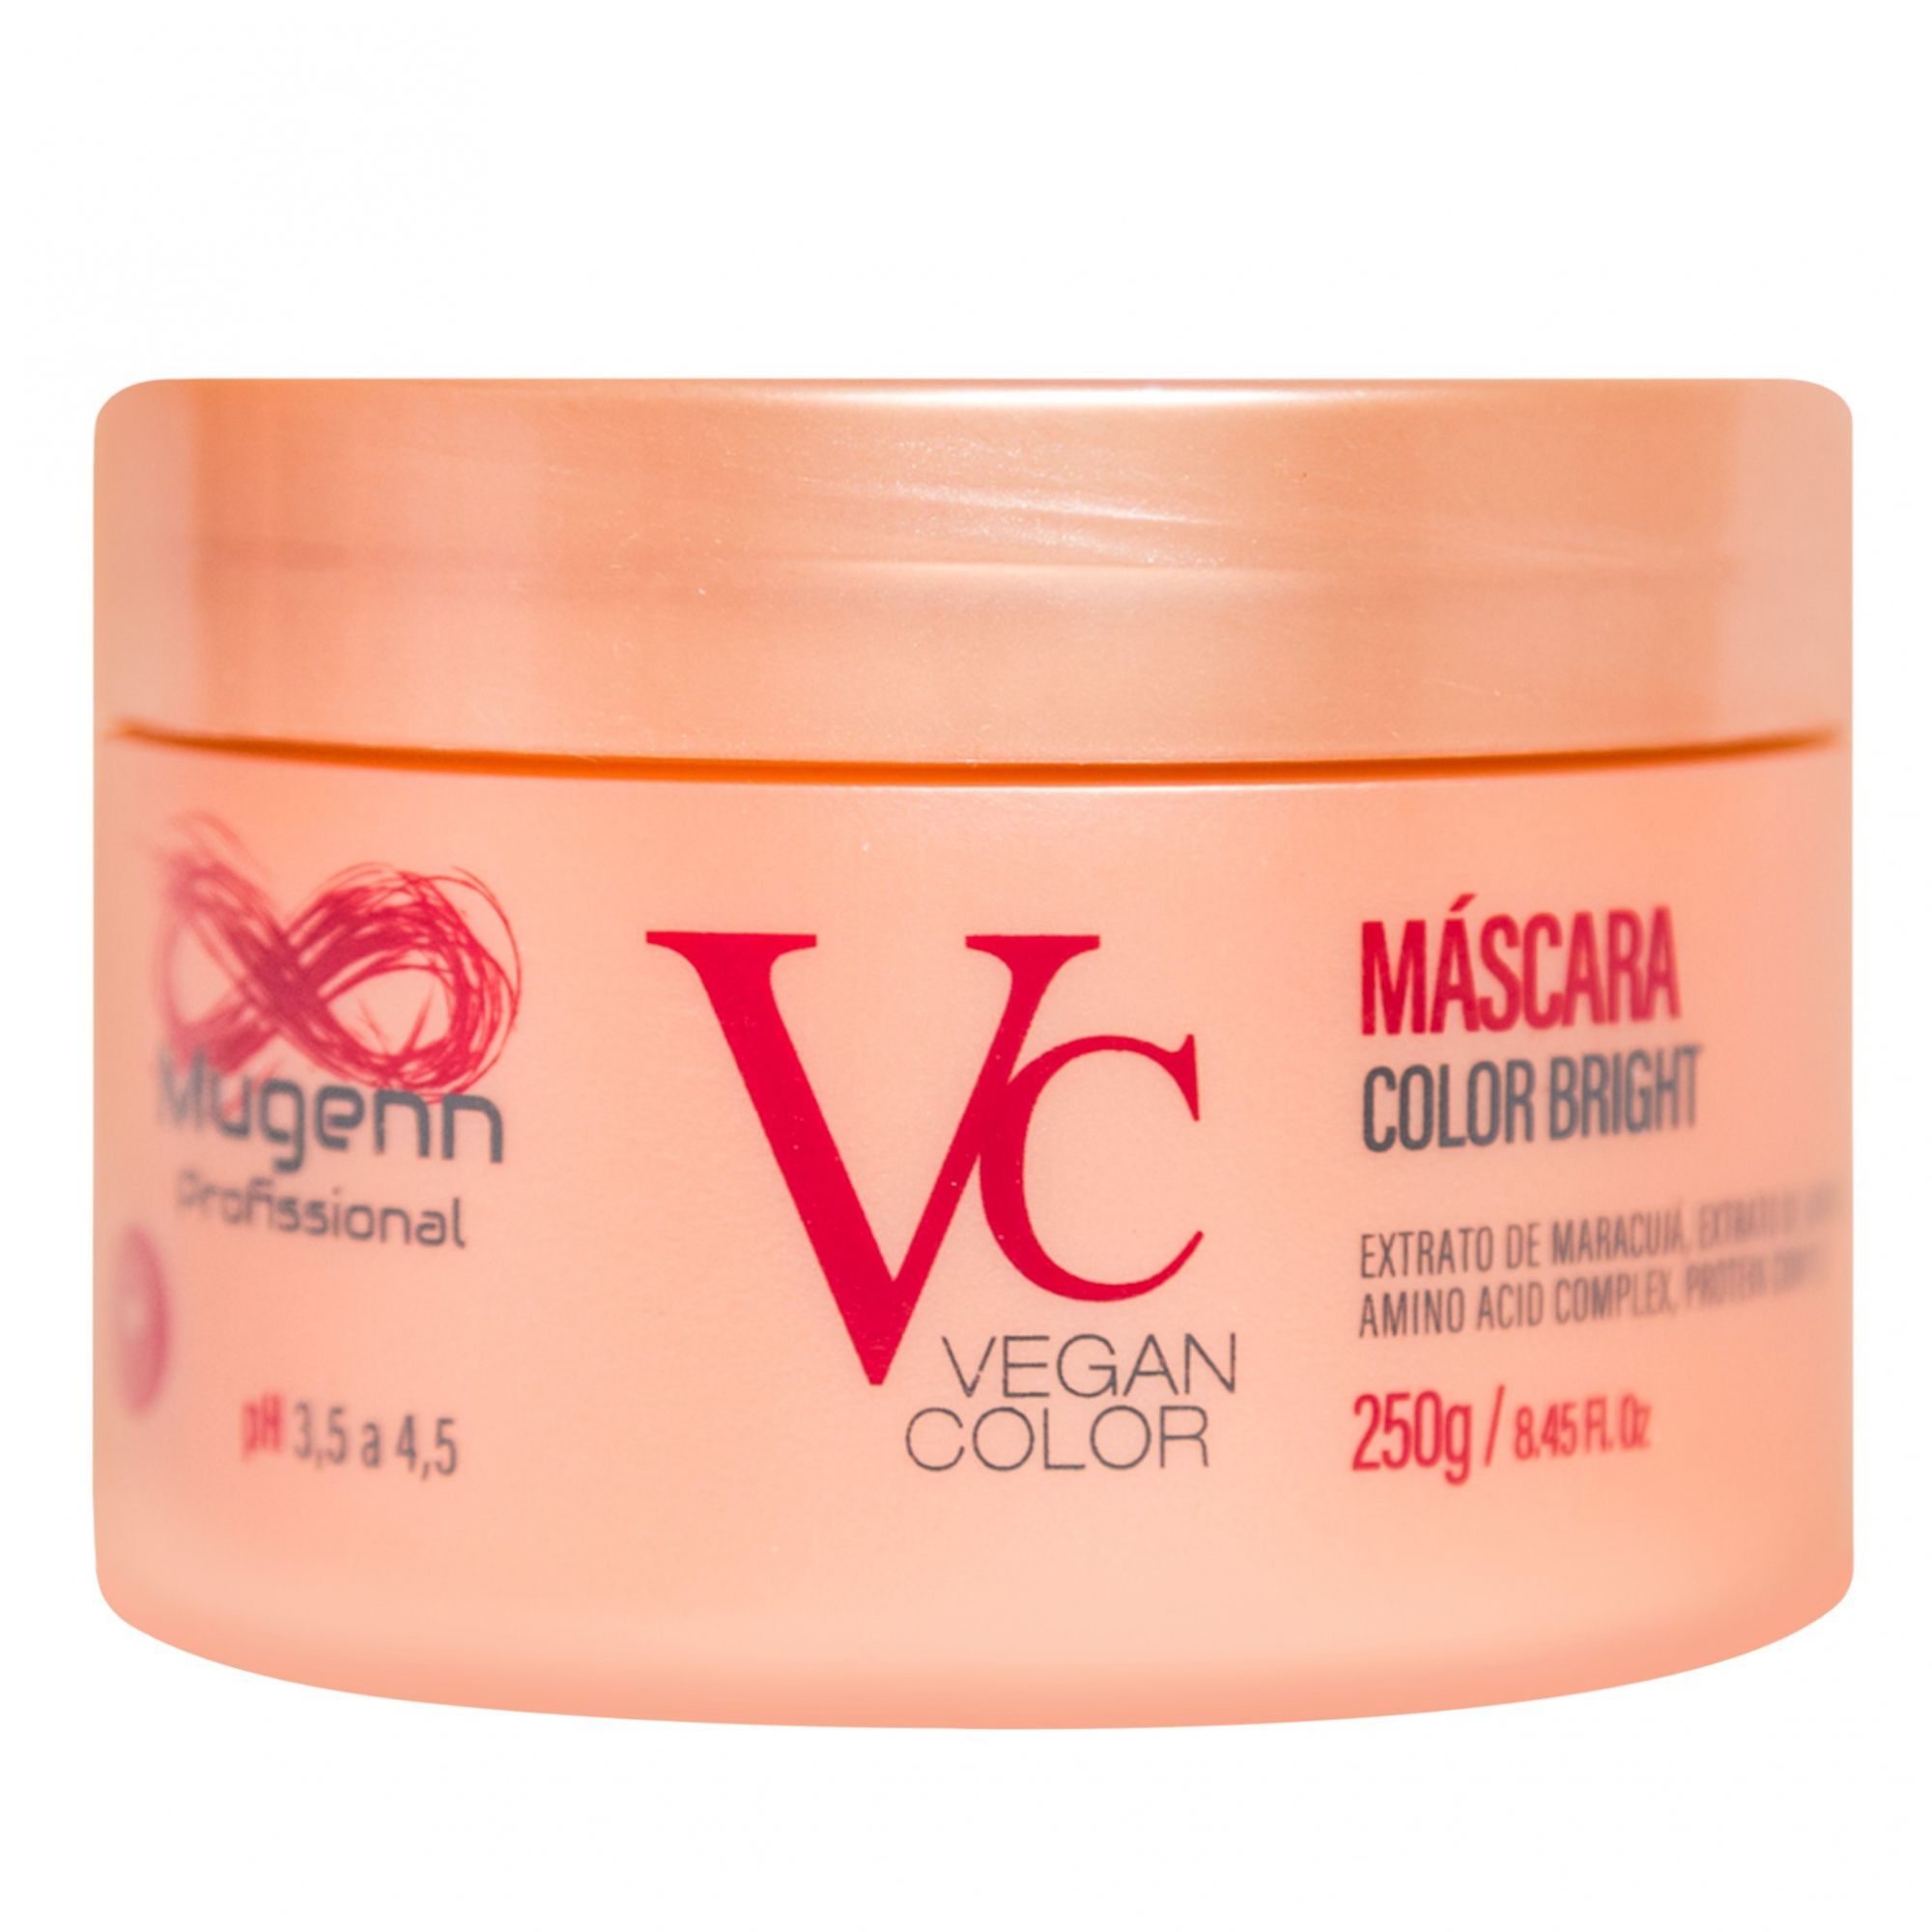 Mugenn Máscara Color Bright Vegan Color 250g